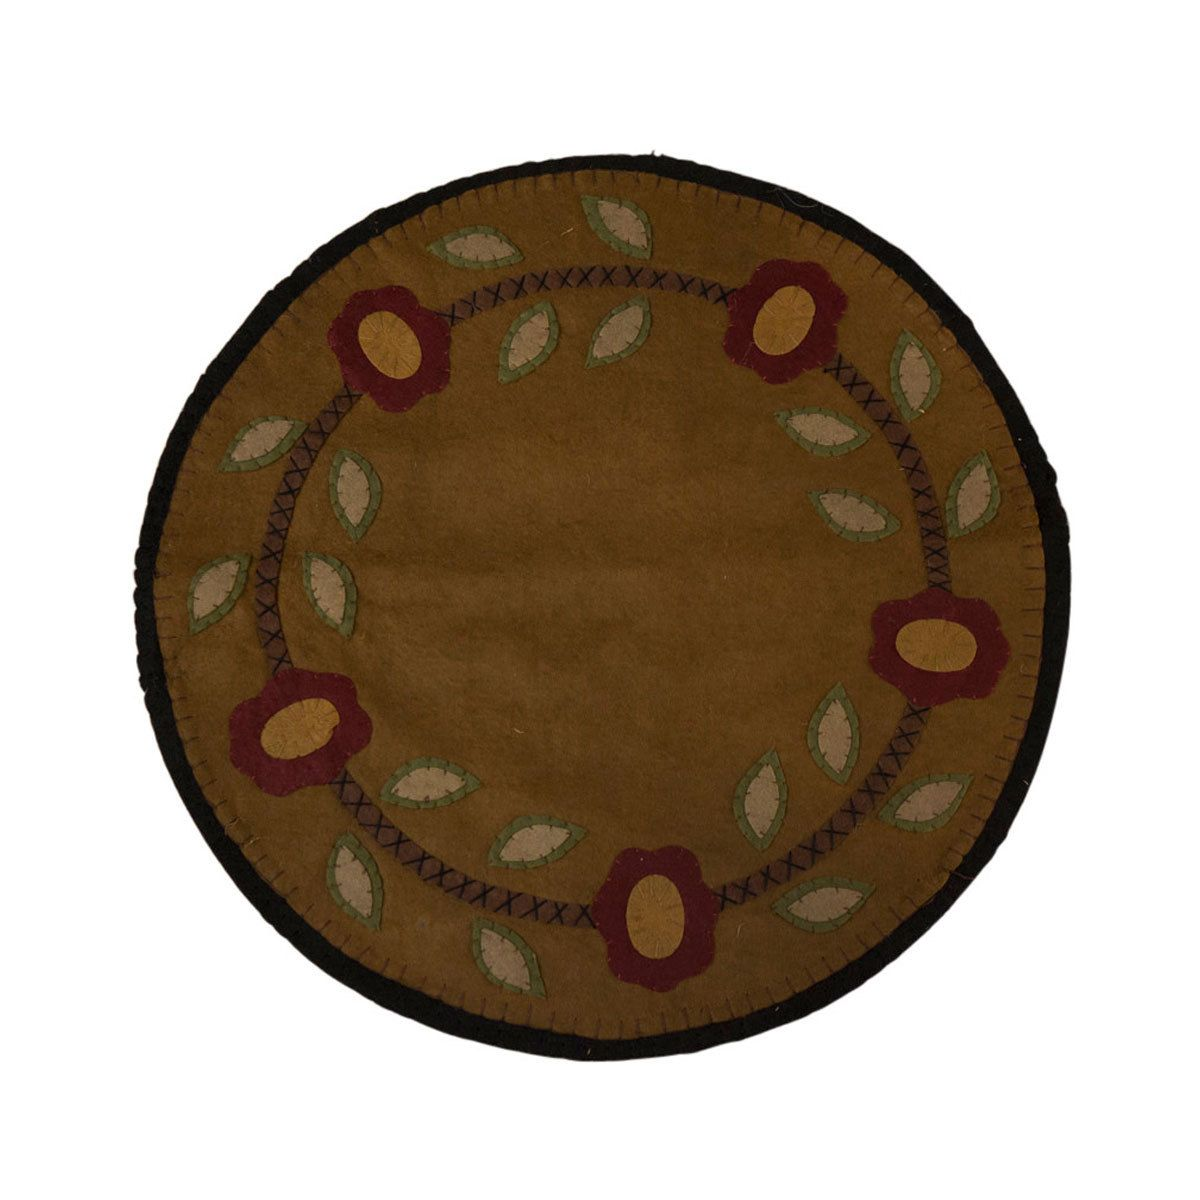 """Round Flower Mat-Felt - Hand-stitched Fabric Mat or Runner made of a combination of felt and wool blend materials - 19"""" round."""